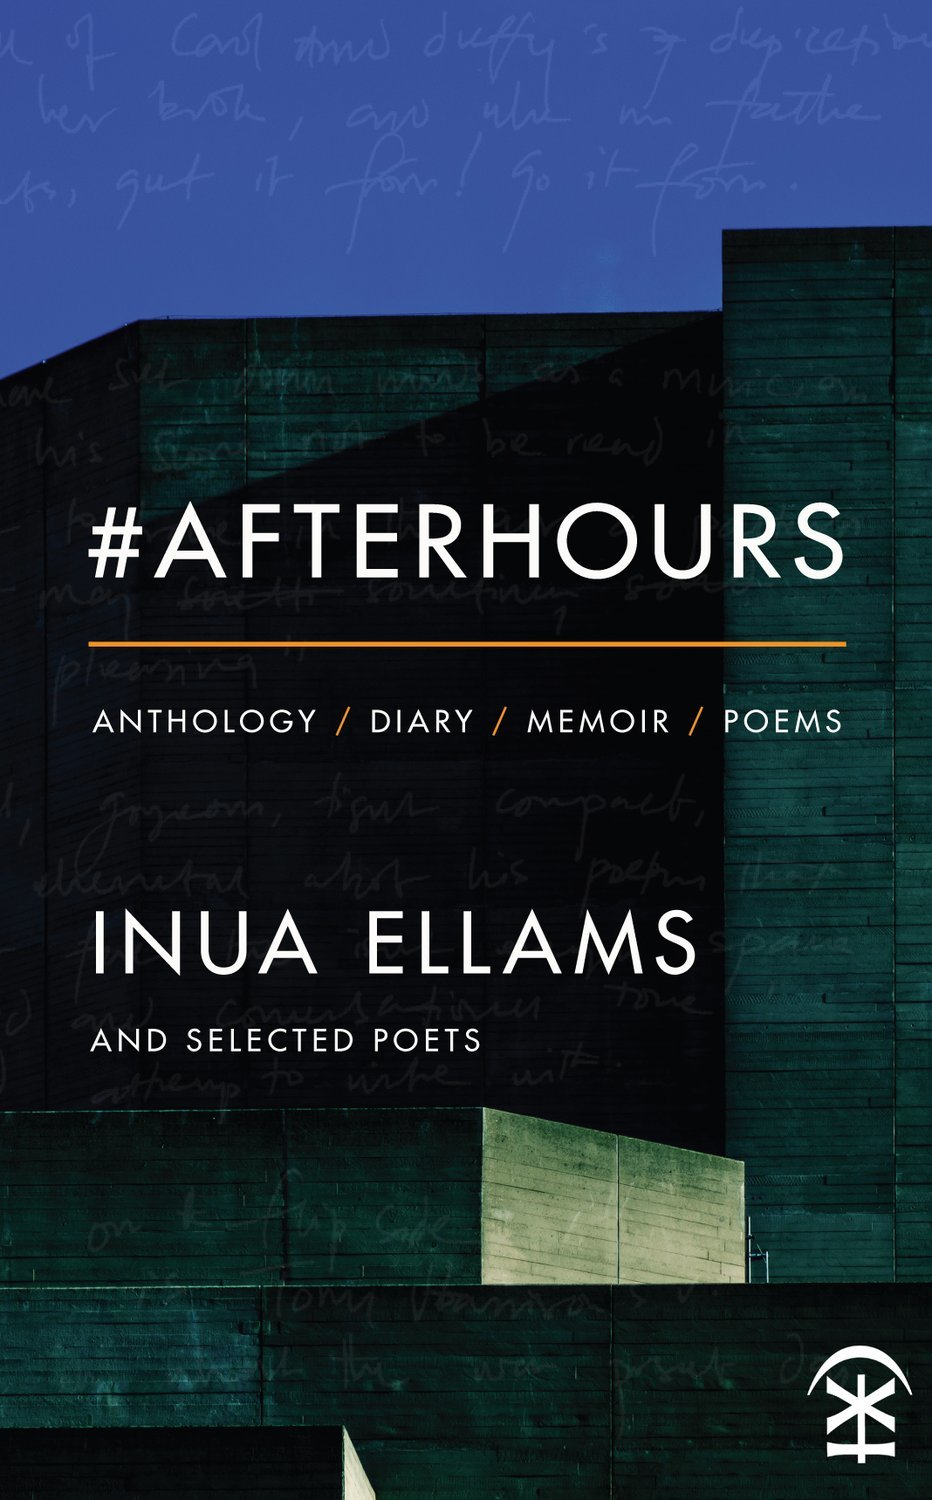 #Afterhours - Inua Ellams & Selected Poets